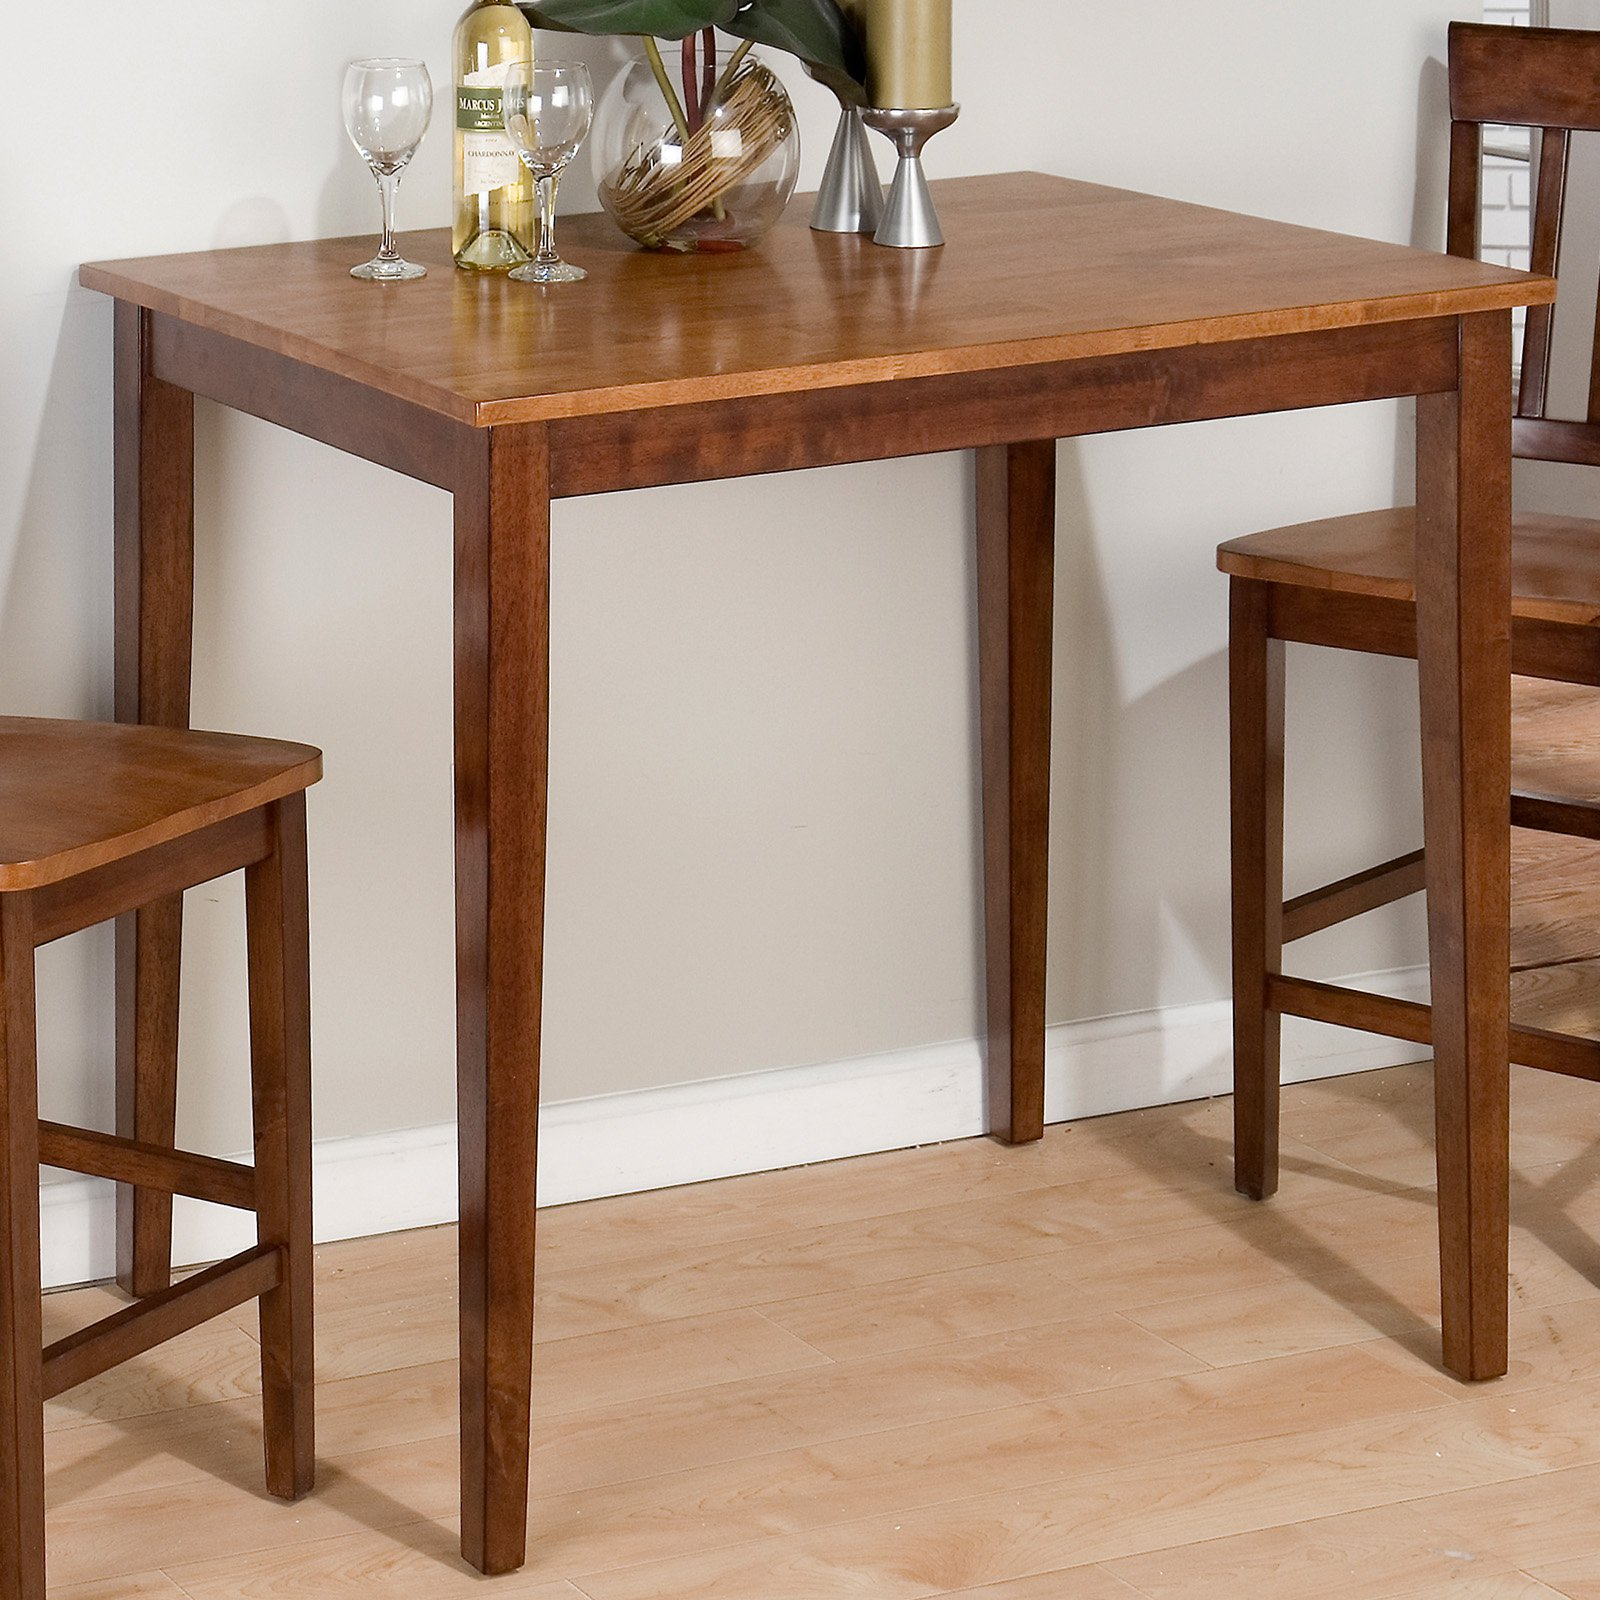 Ridgewood Counter Height Drop Leaf Dining Table With Storage   Walmart.com